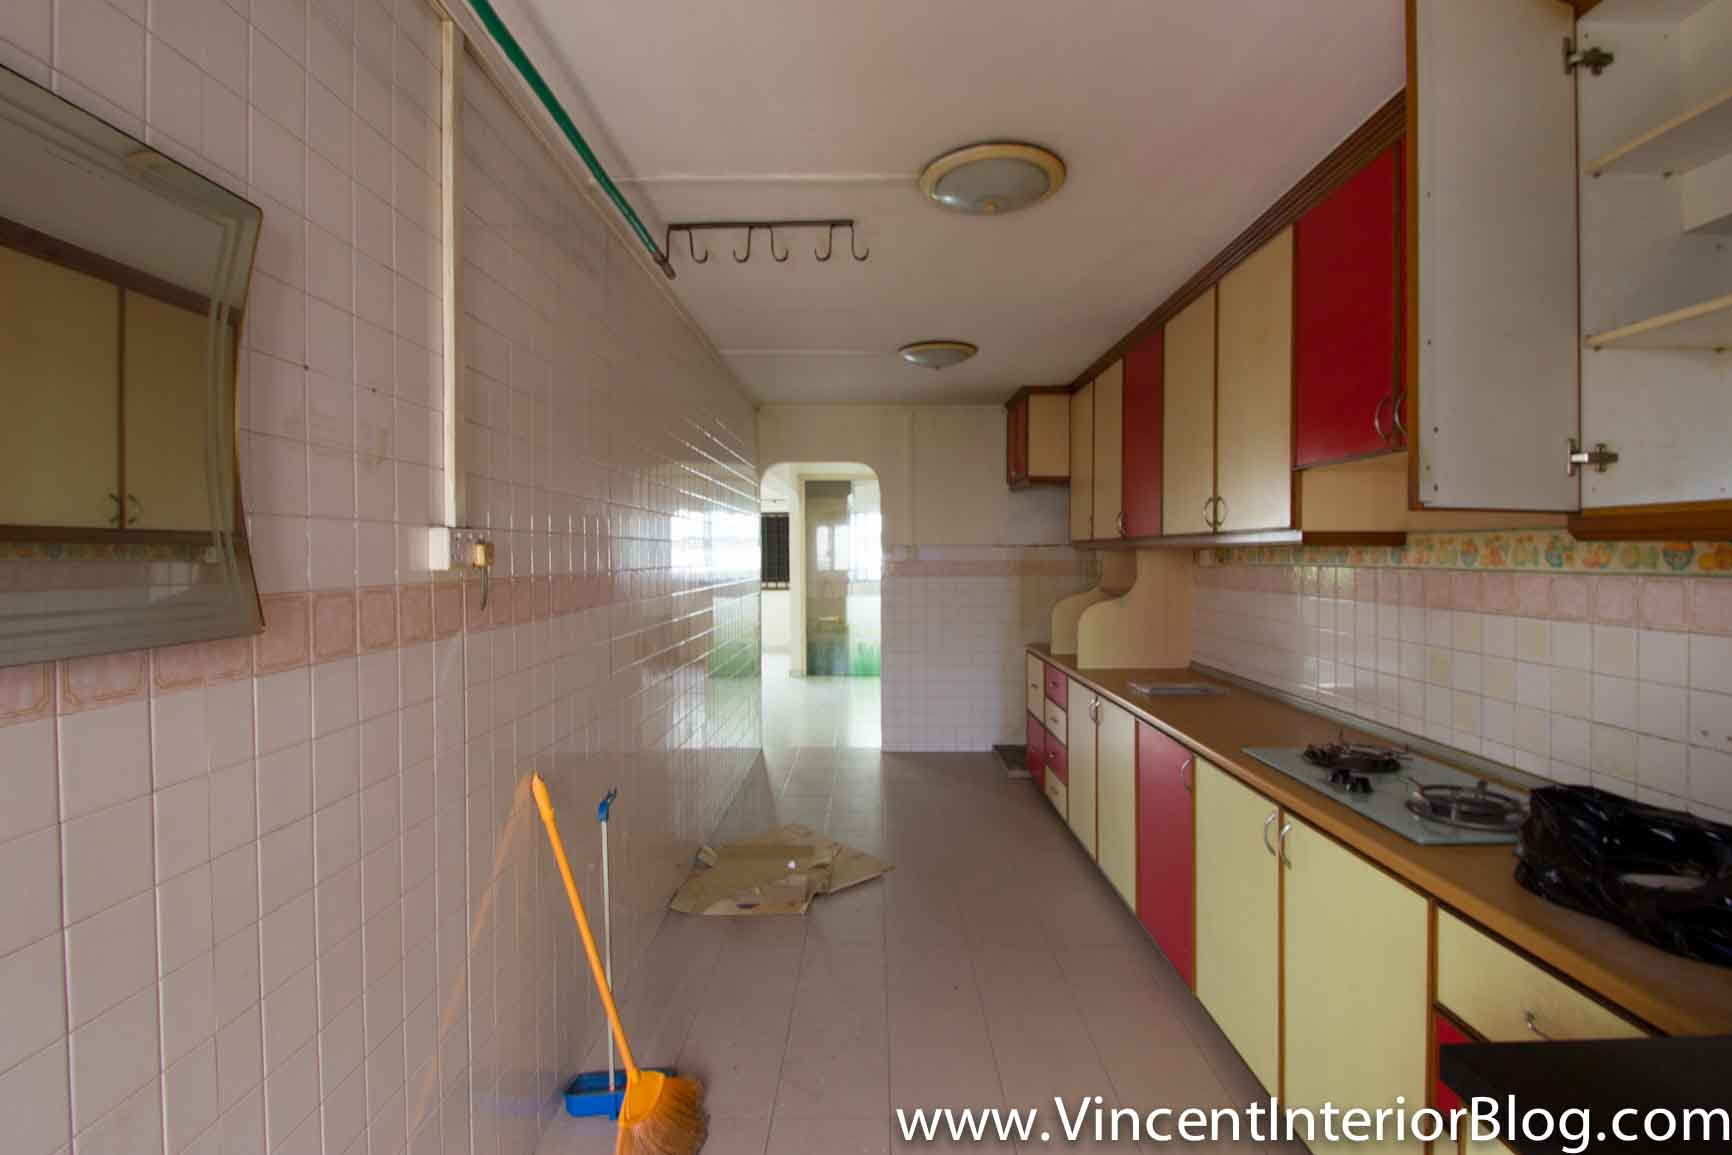 Hdb 5 room archives vincent interior blog vincent for Interior design singapore hdb 5 room flat